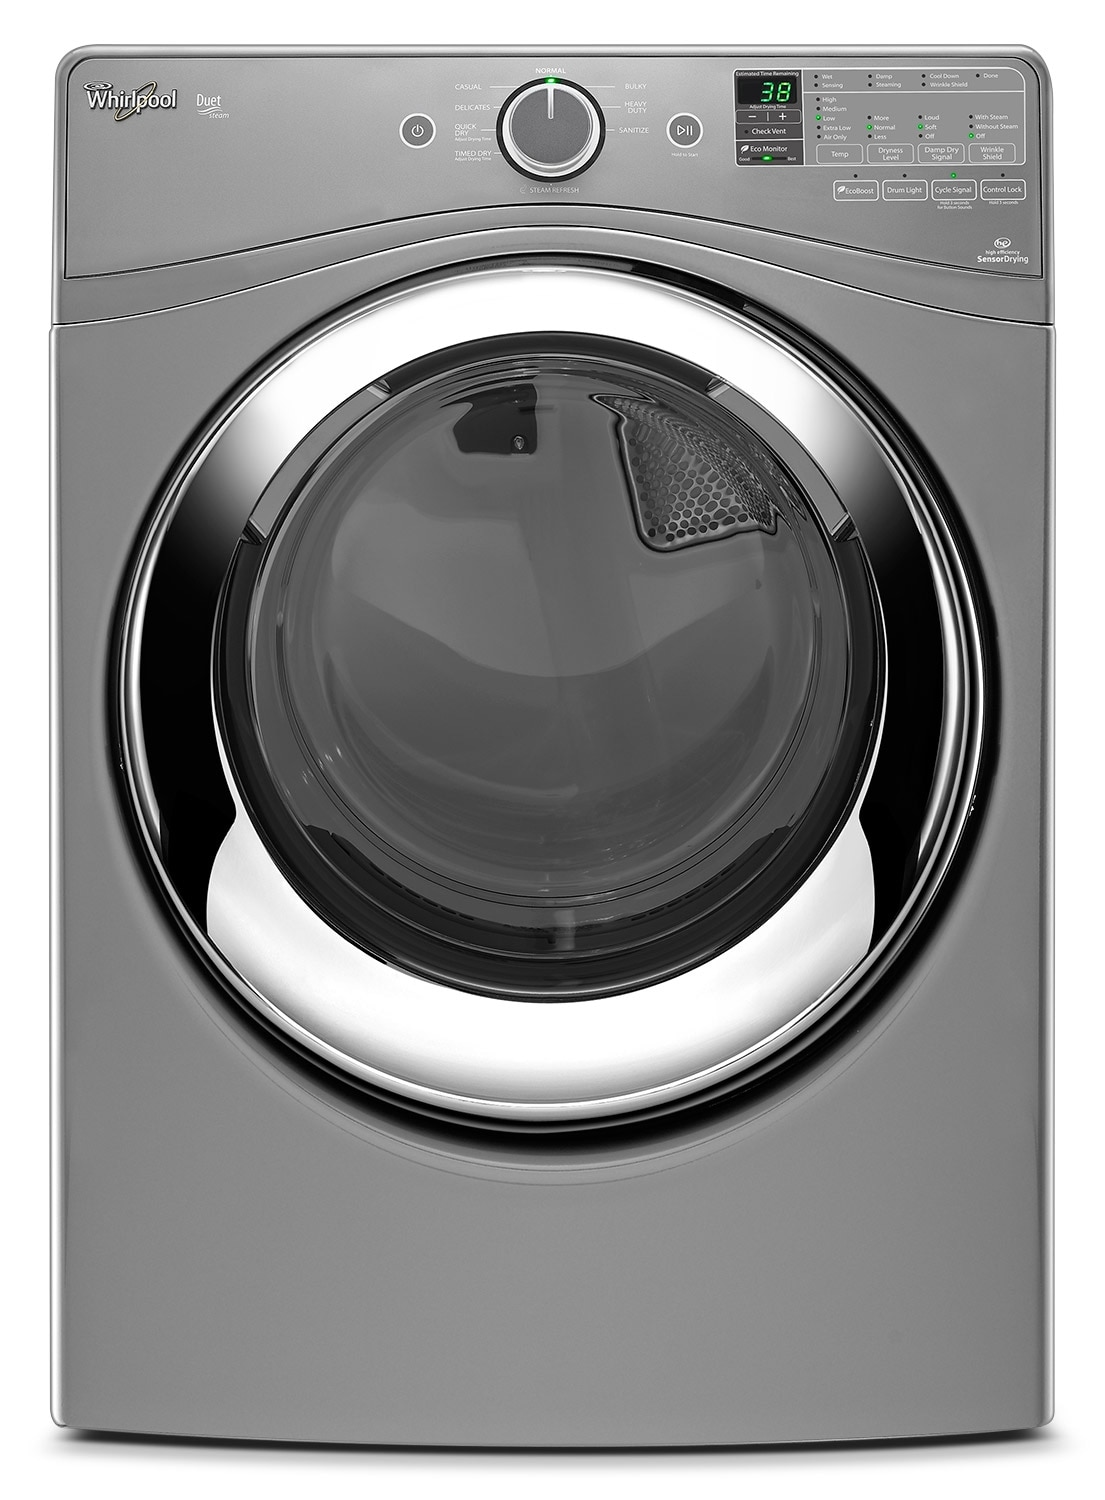 Washers and Dryers - Whirlpool Gas Dryer (7.3 Cu. Ft.) WGD87HEDC